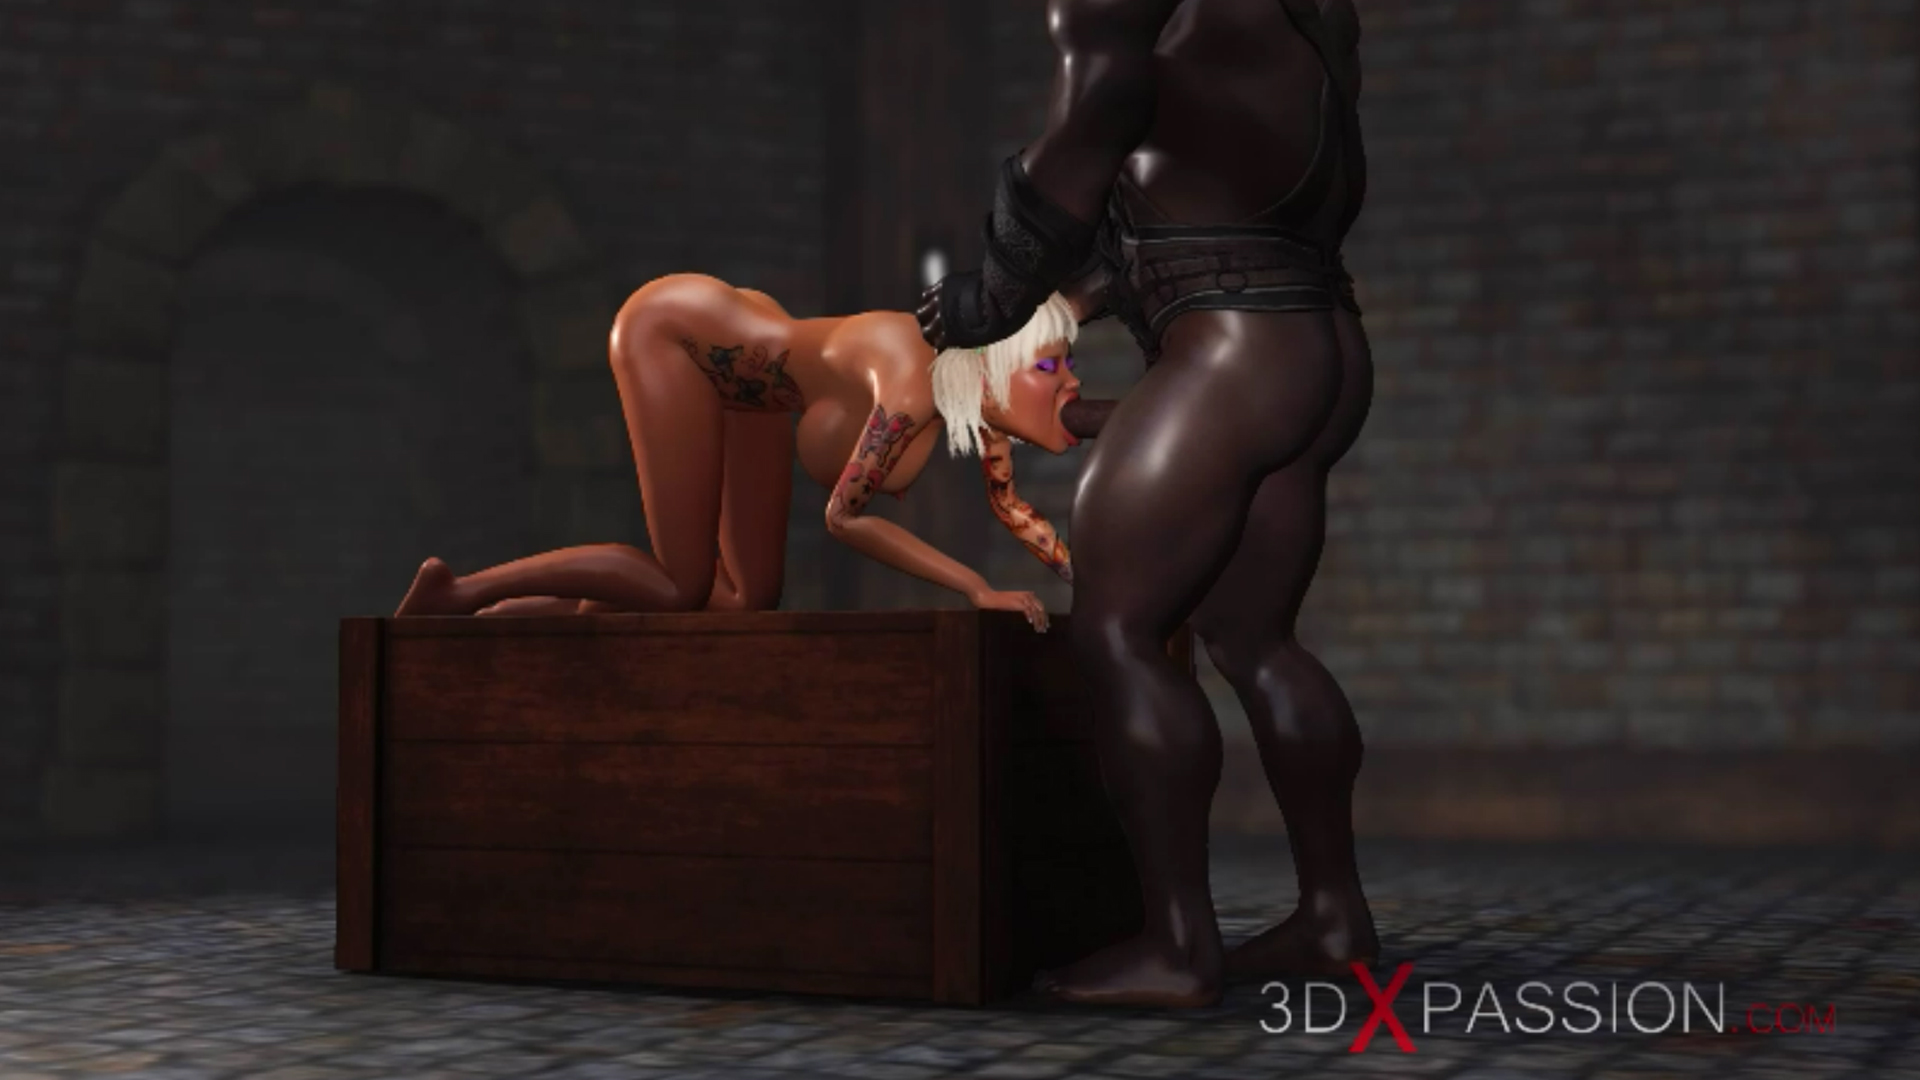 Sweet schoolgirl giving extreme blowjob black man dungeon